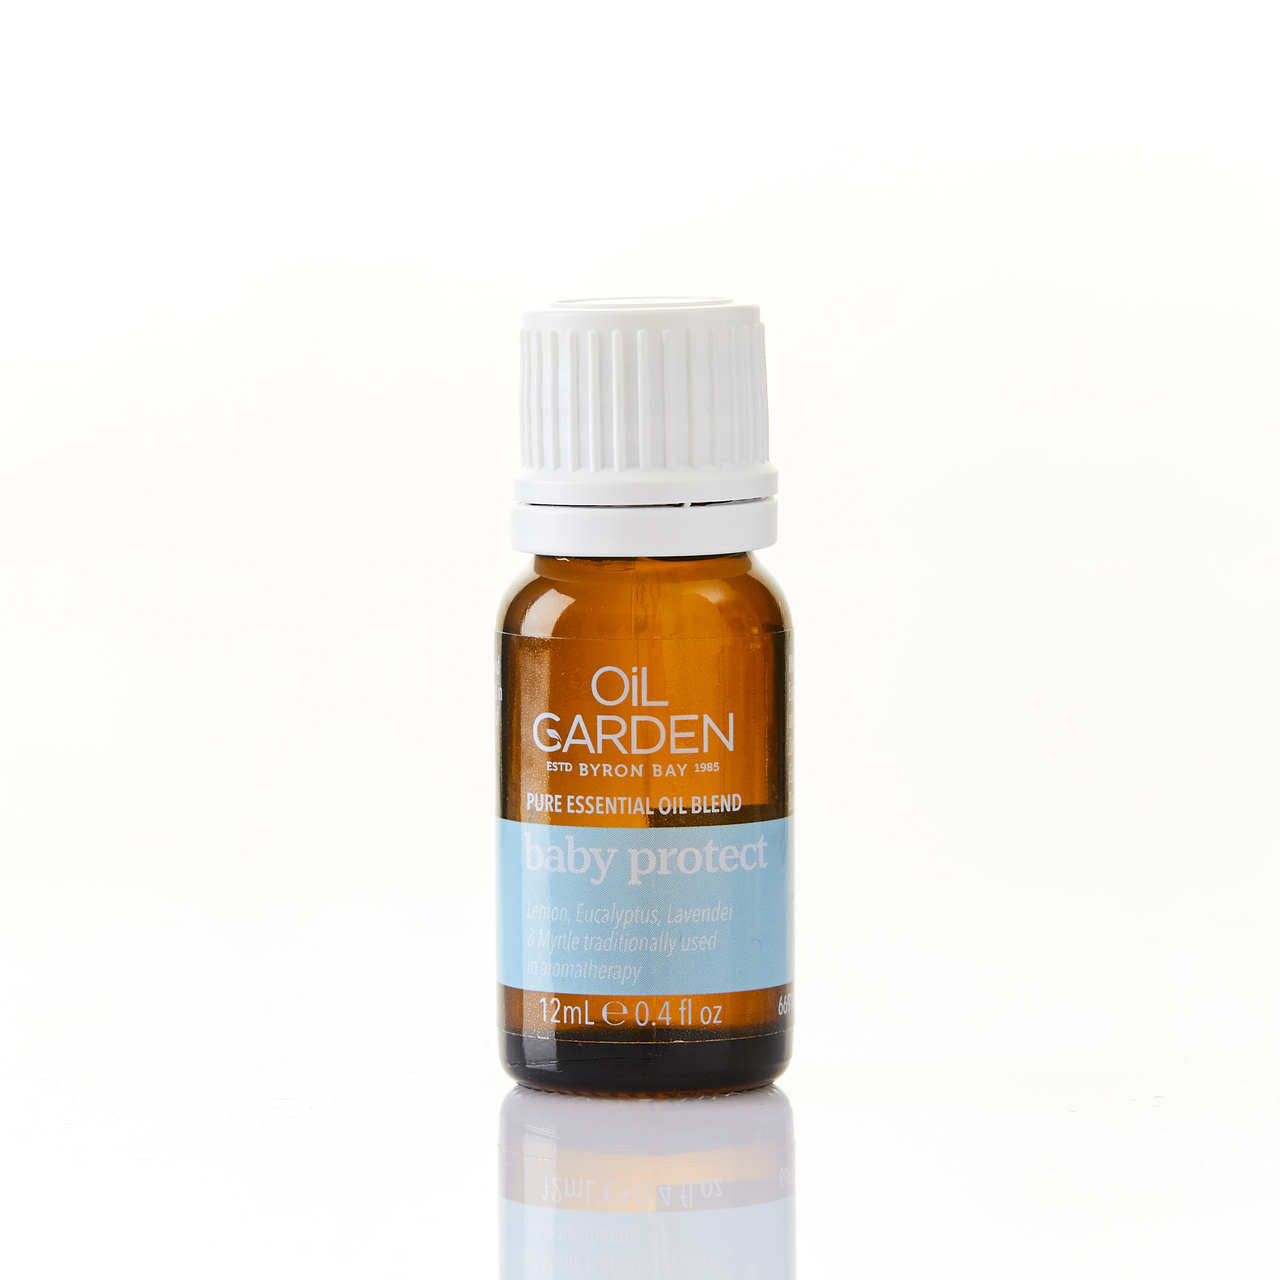 Oil Garden Baby Protect Essential Oil Blend 12mL